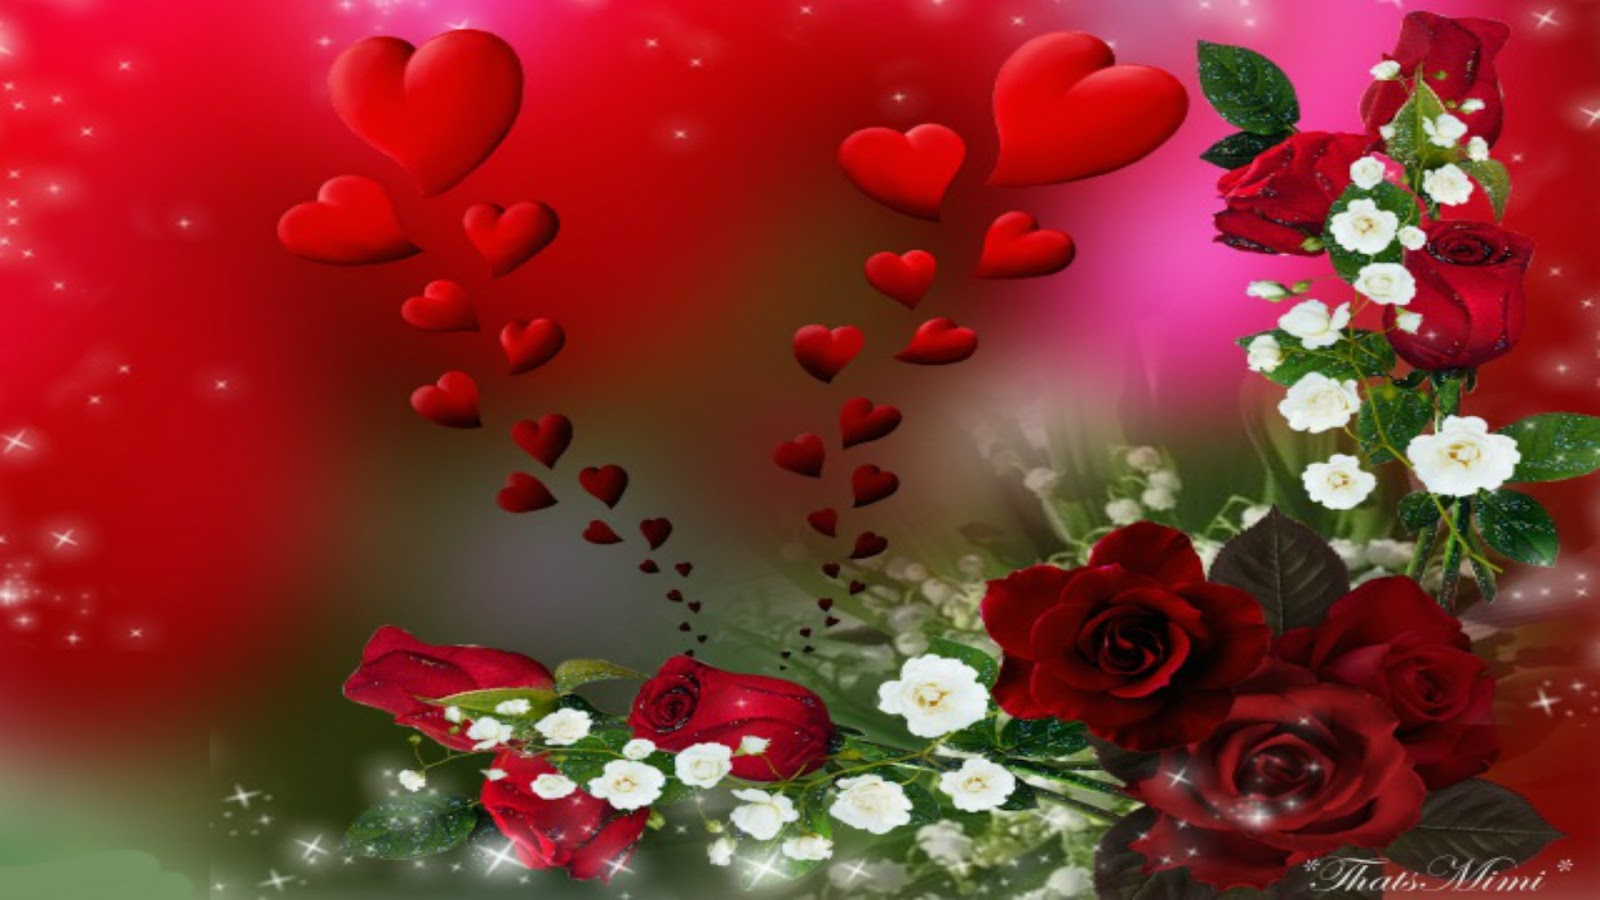 Pictures collection flower heart wallpapers flower heart wallpapers izmirmasajfo